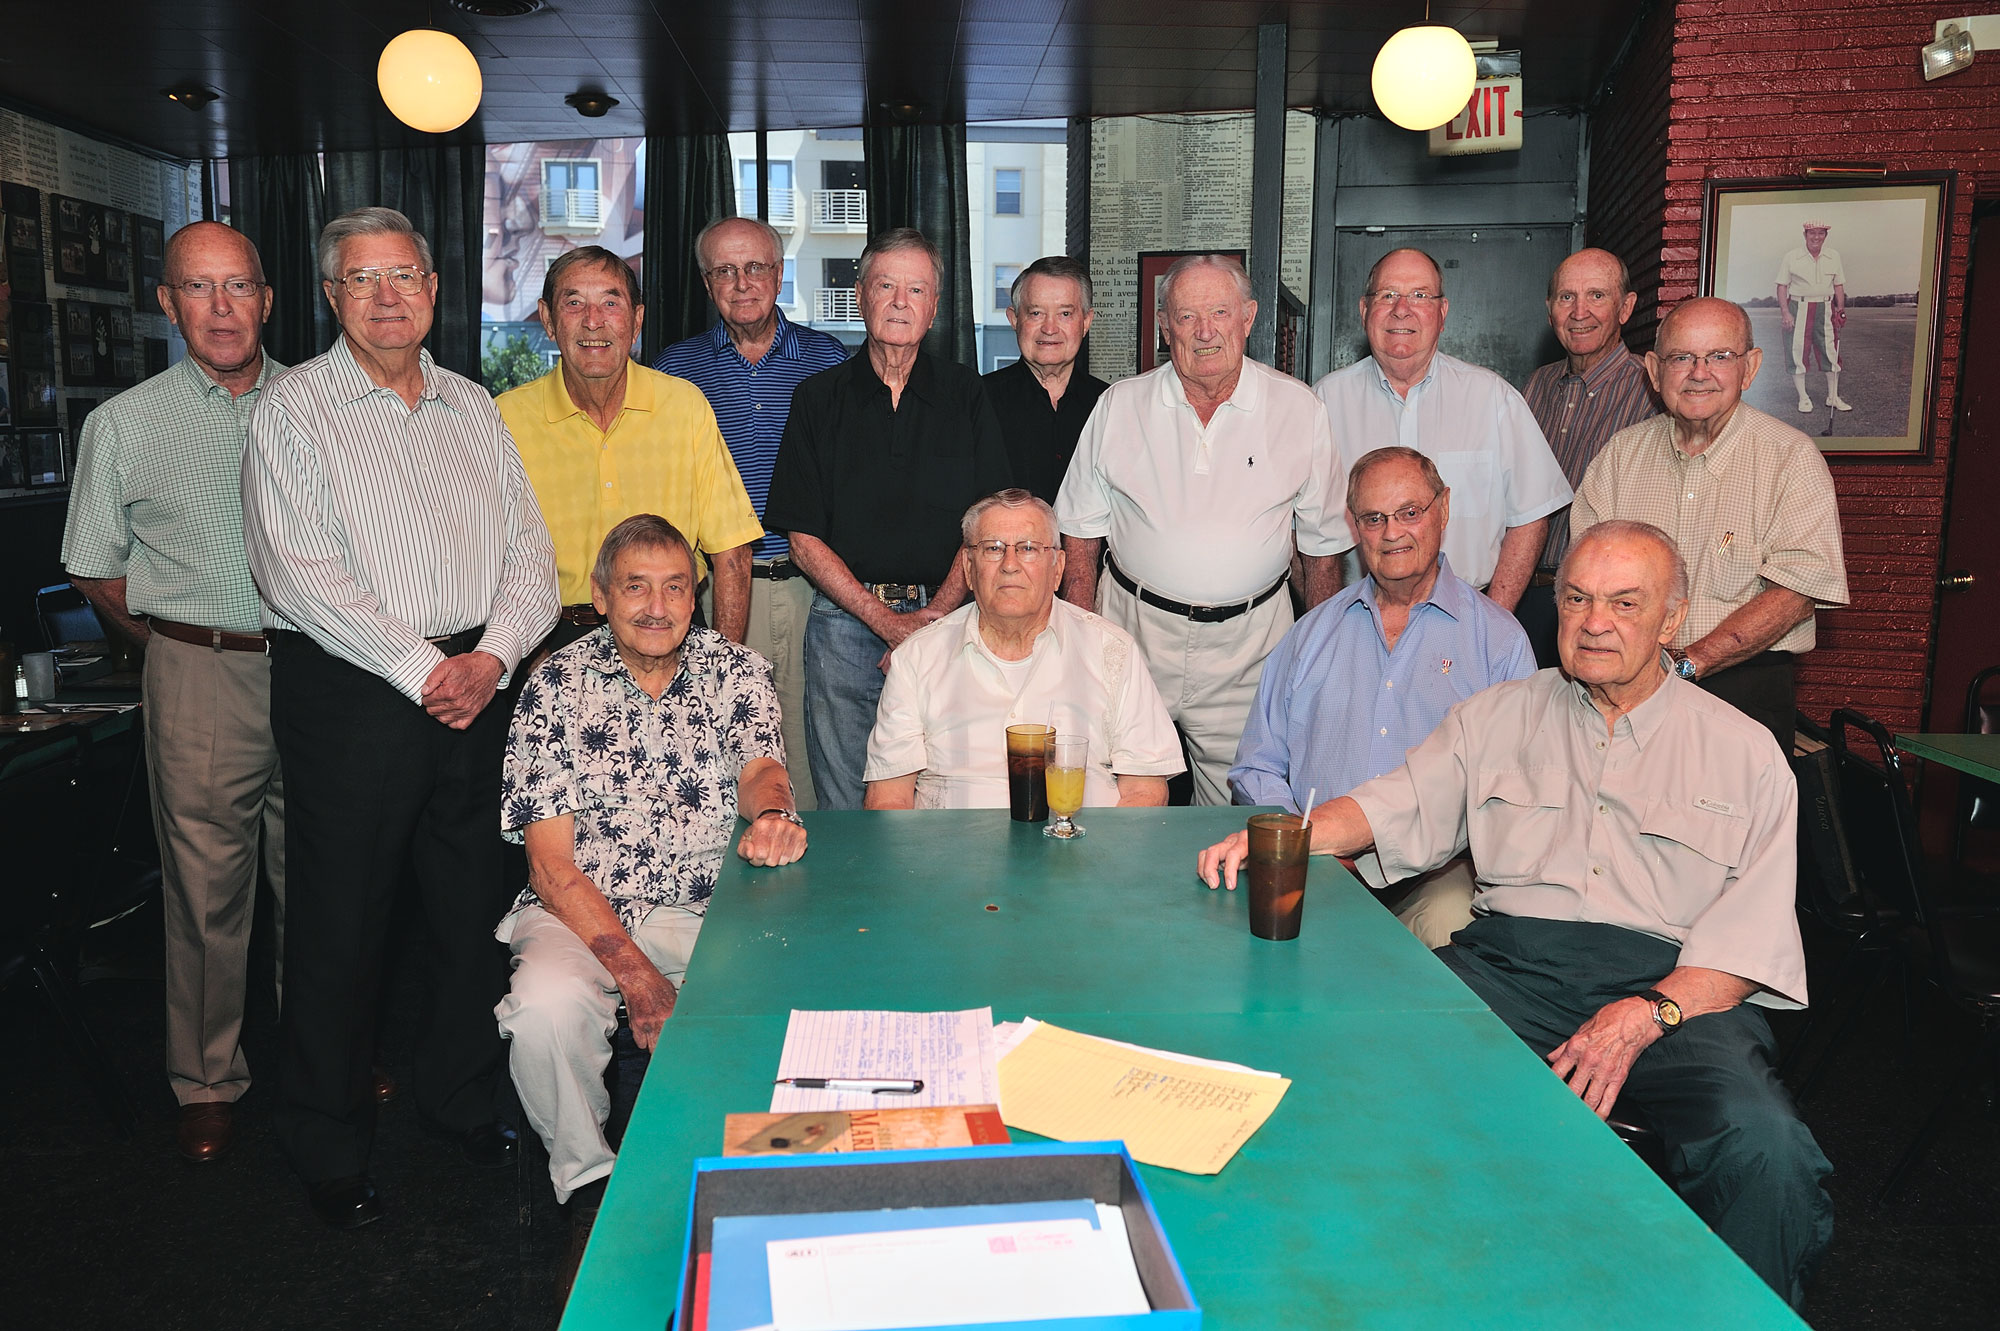 Talons from the 1940s and '50s got together in July to share stories at Campisi's Egyptian Lounge in Dallas.